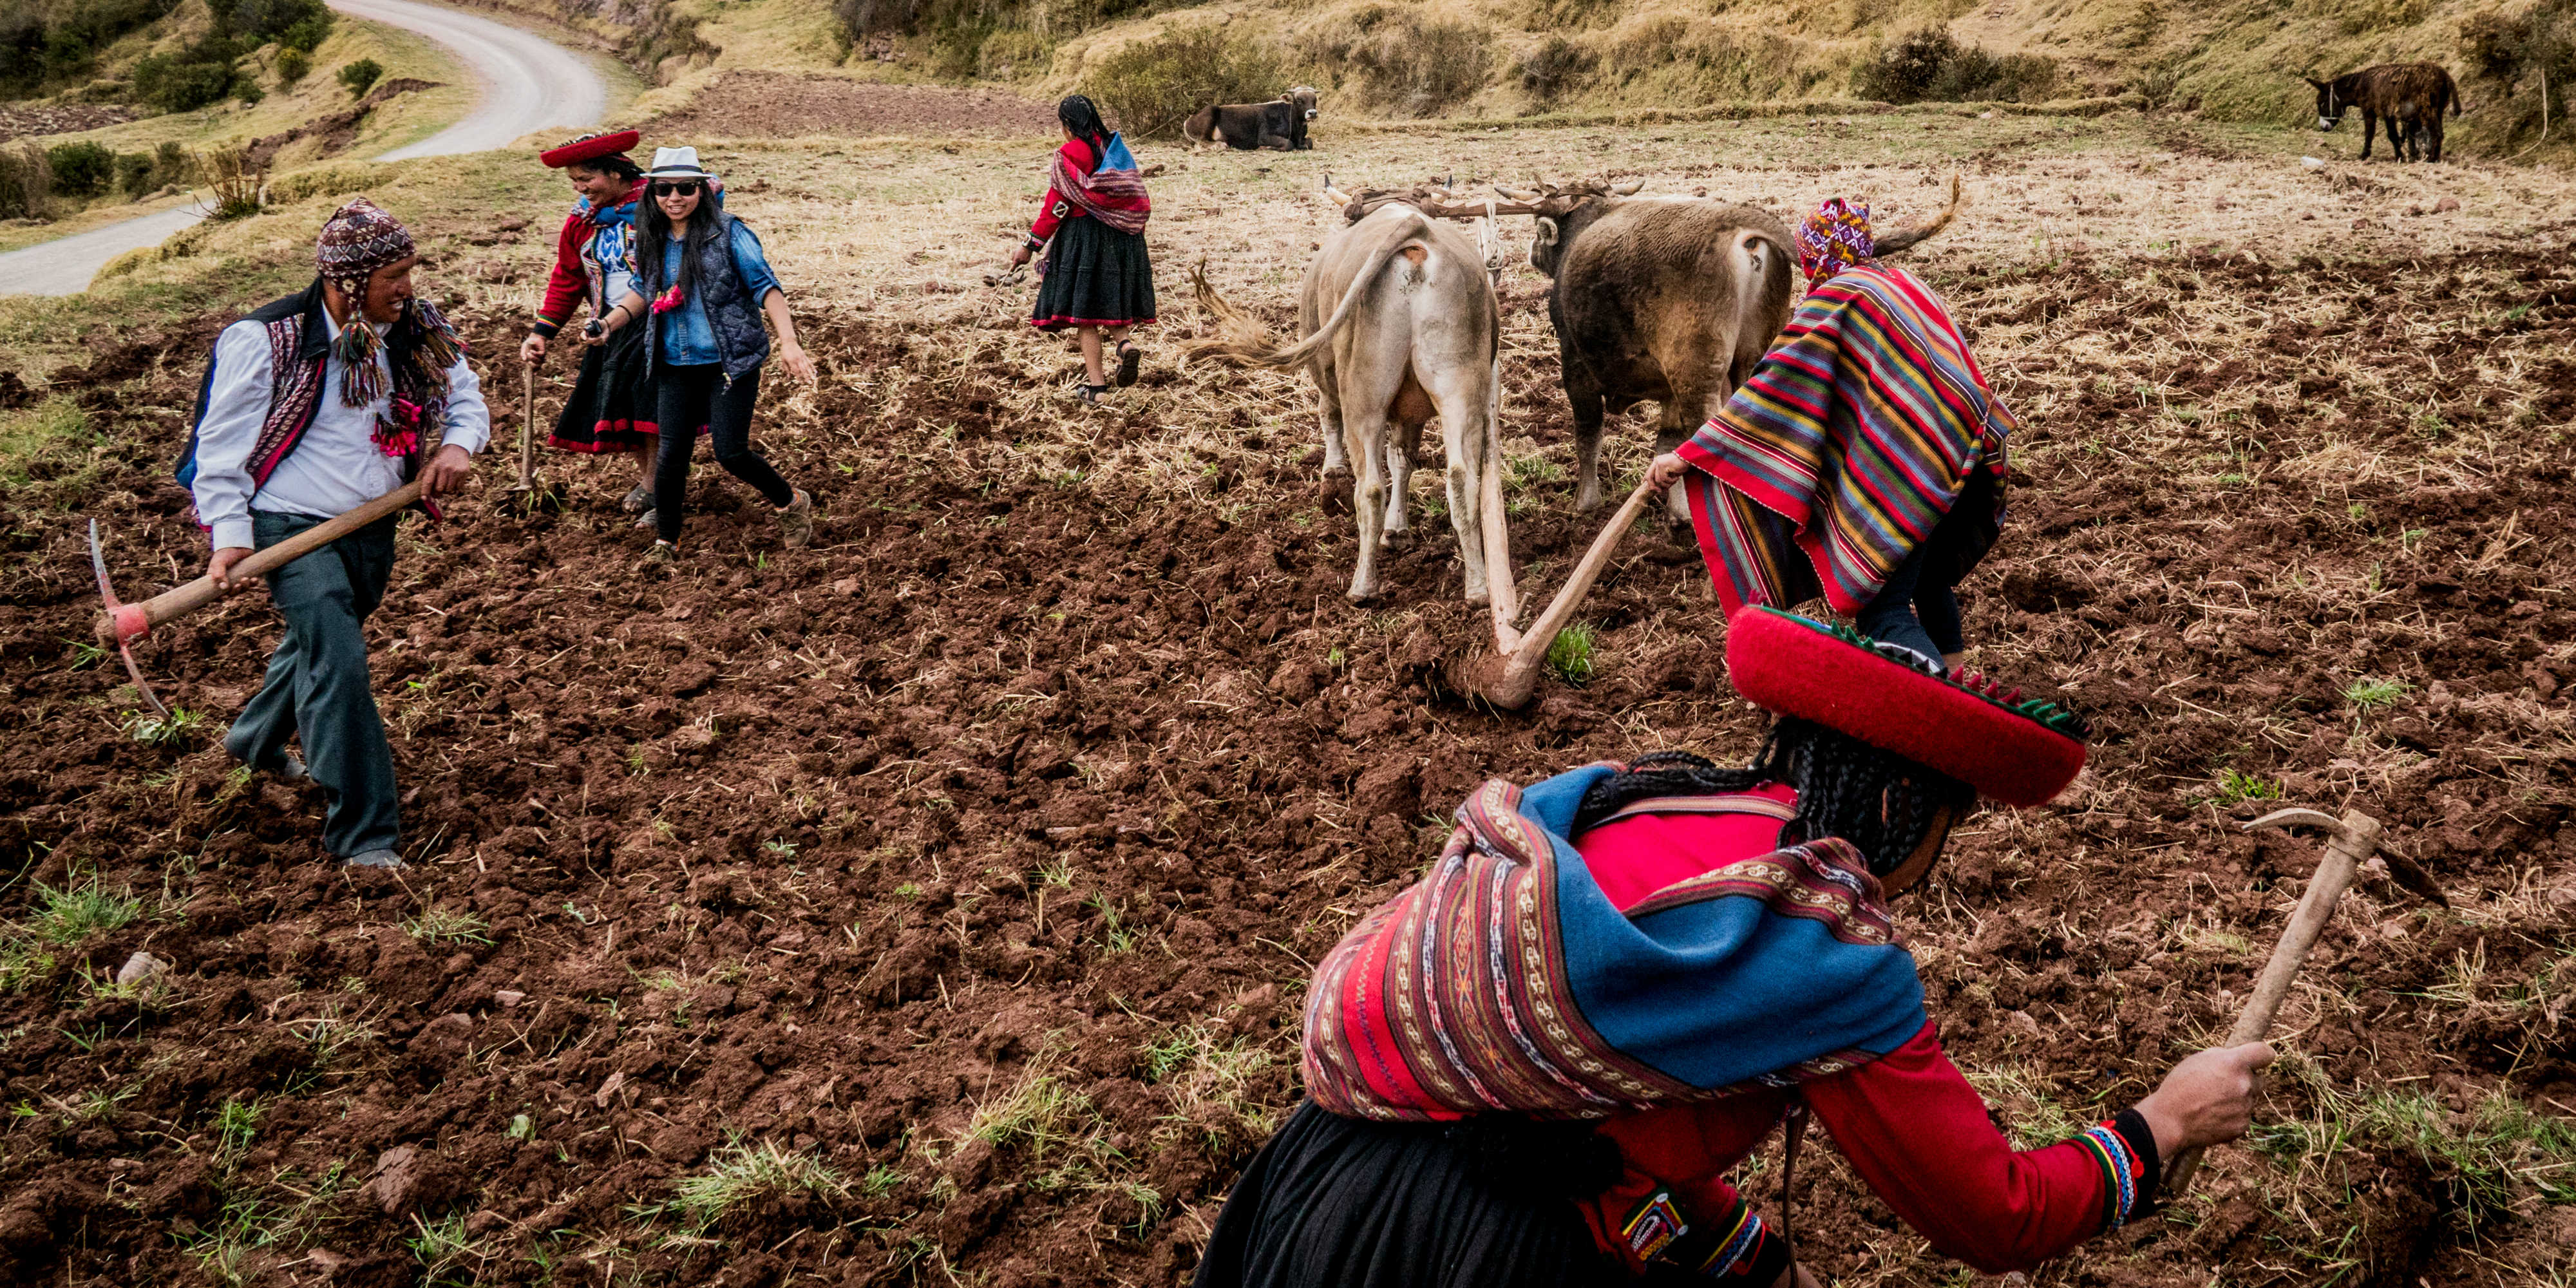 Quechua culture in Peru is mostly in rural areas, and agricultural communities, like this.